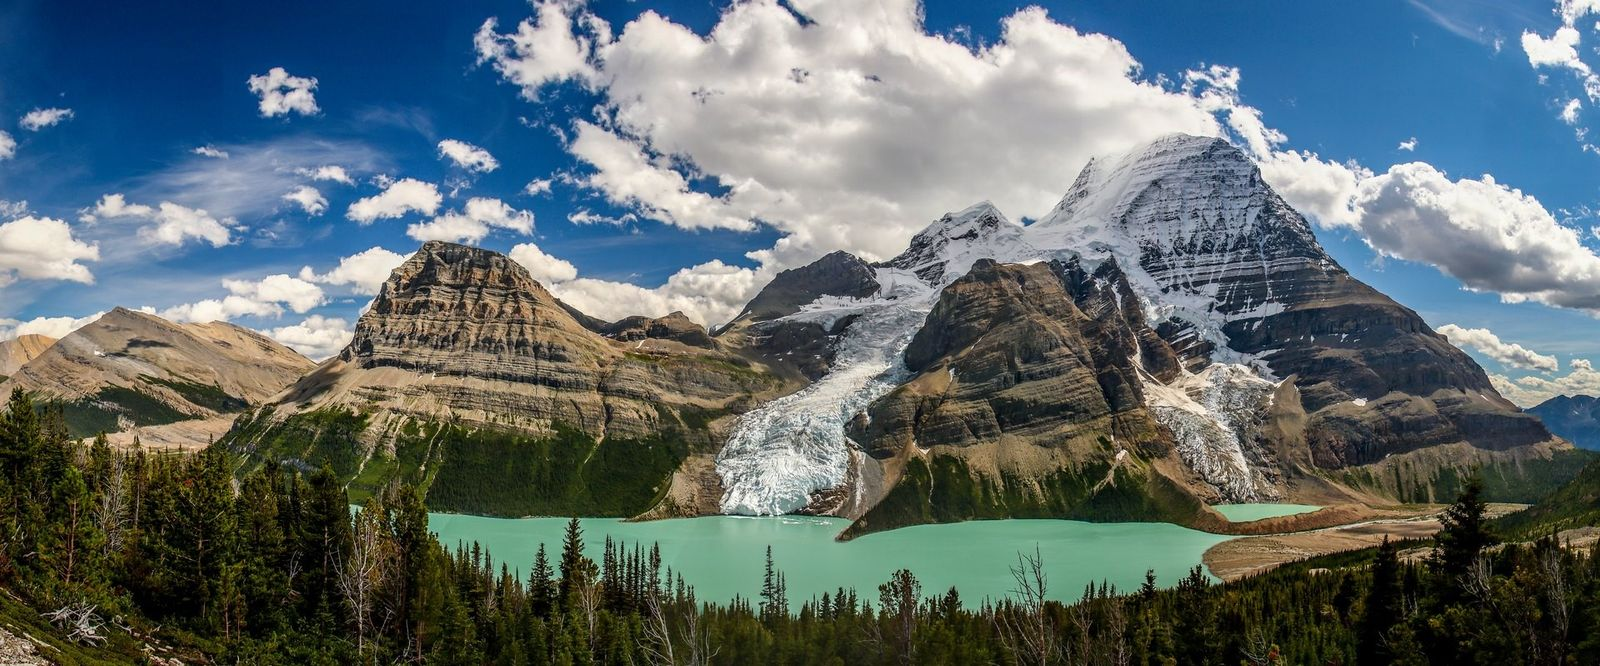 A typical scene from the window of the train when crossing Canada. Mount Robson Provincial Park, ...